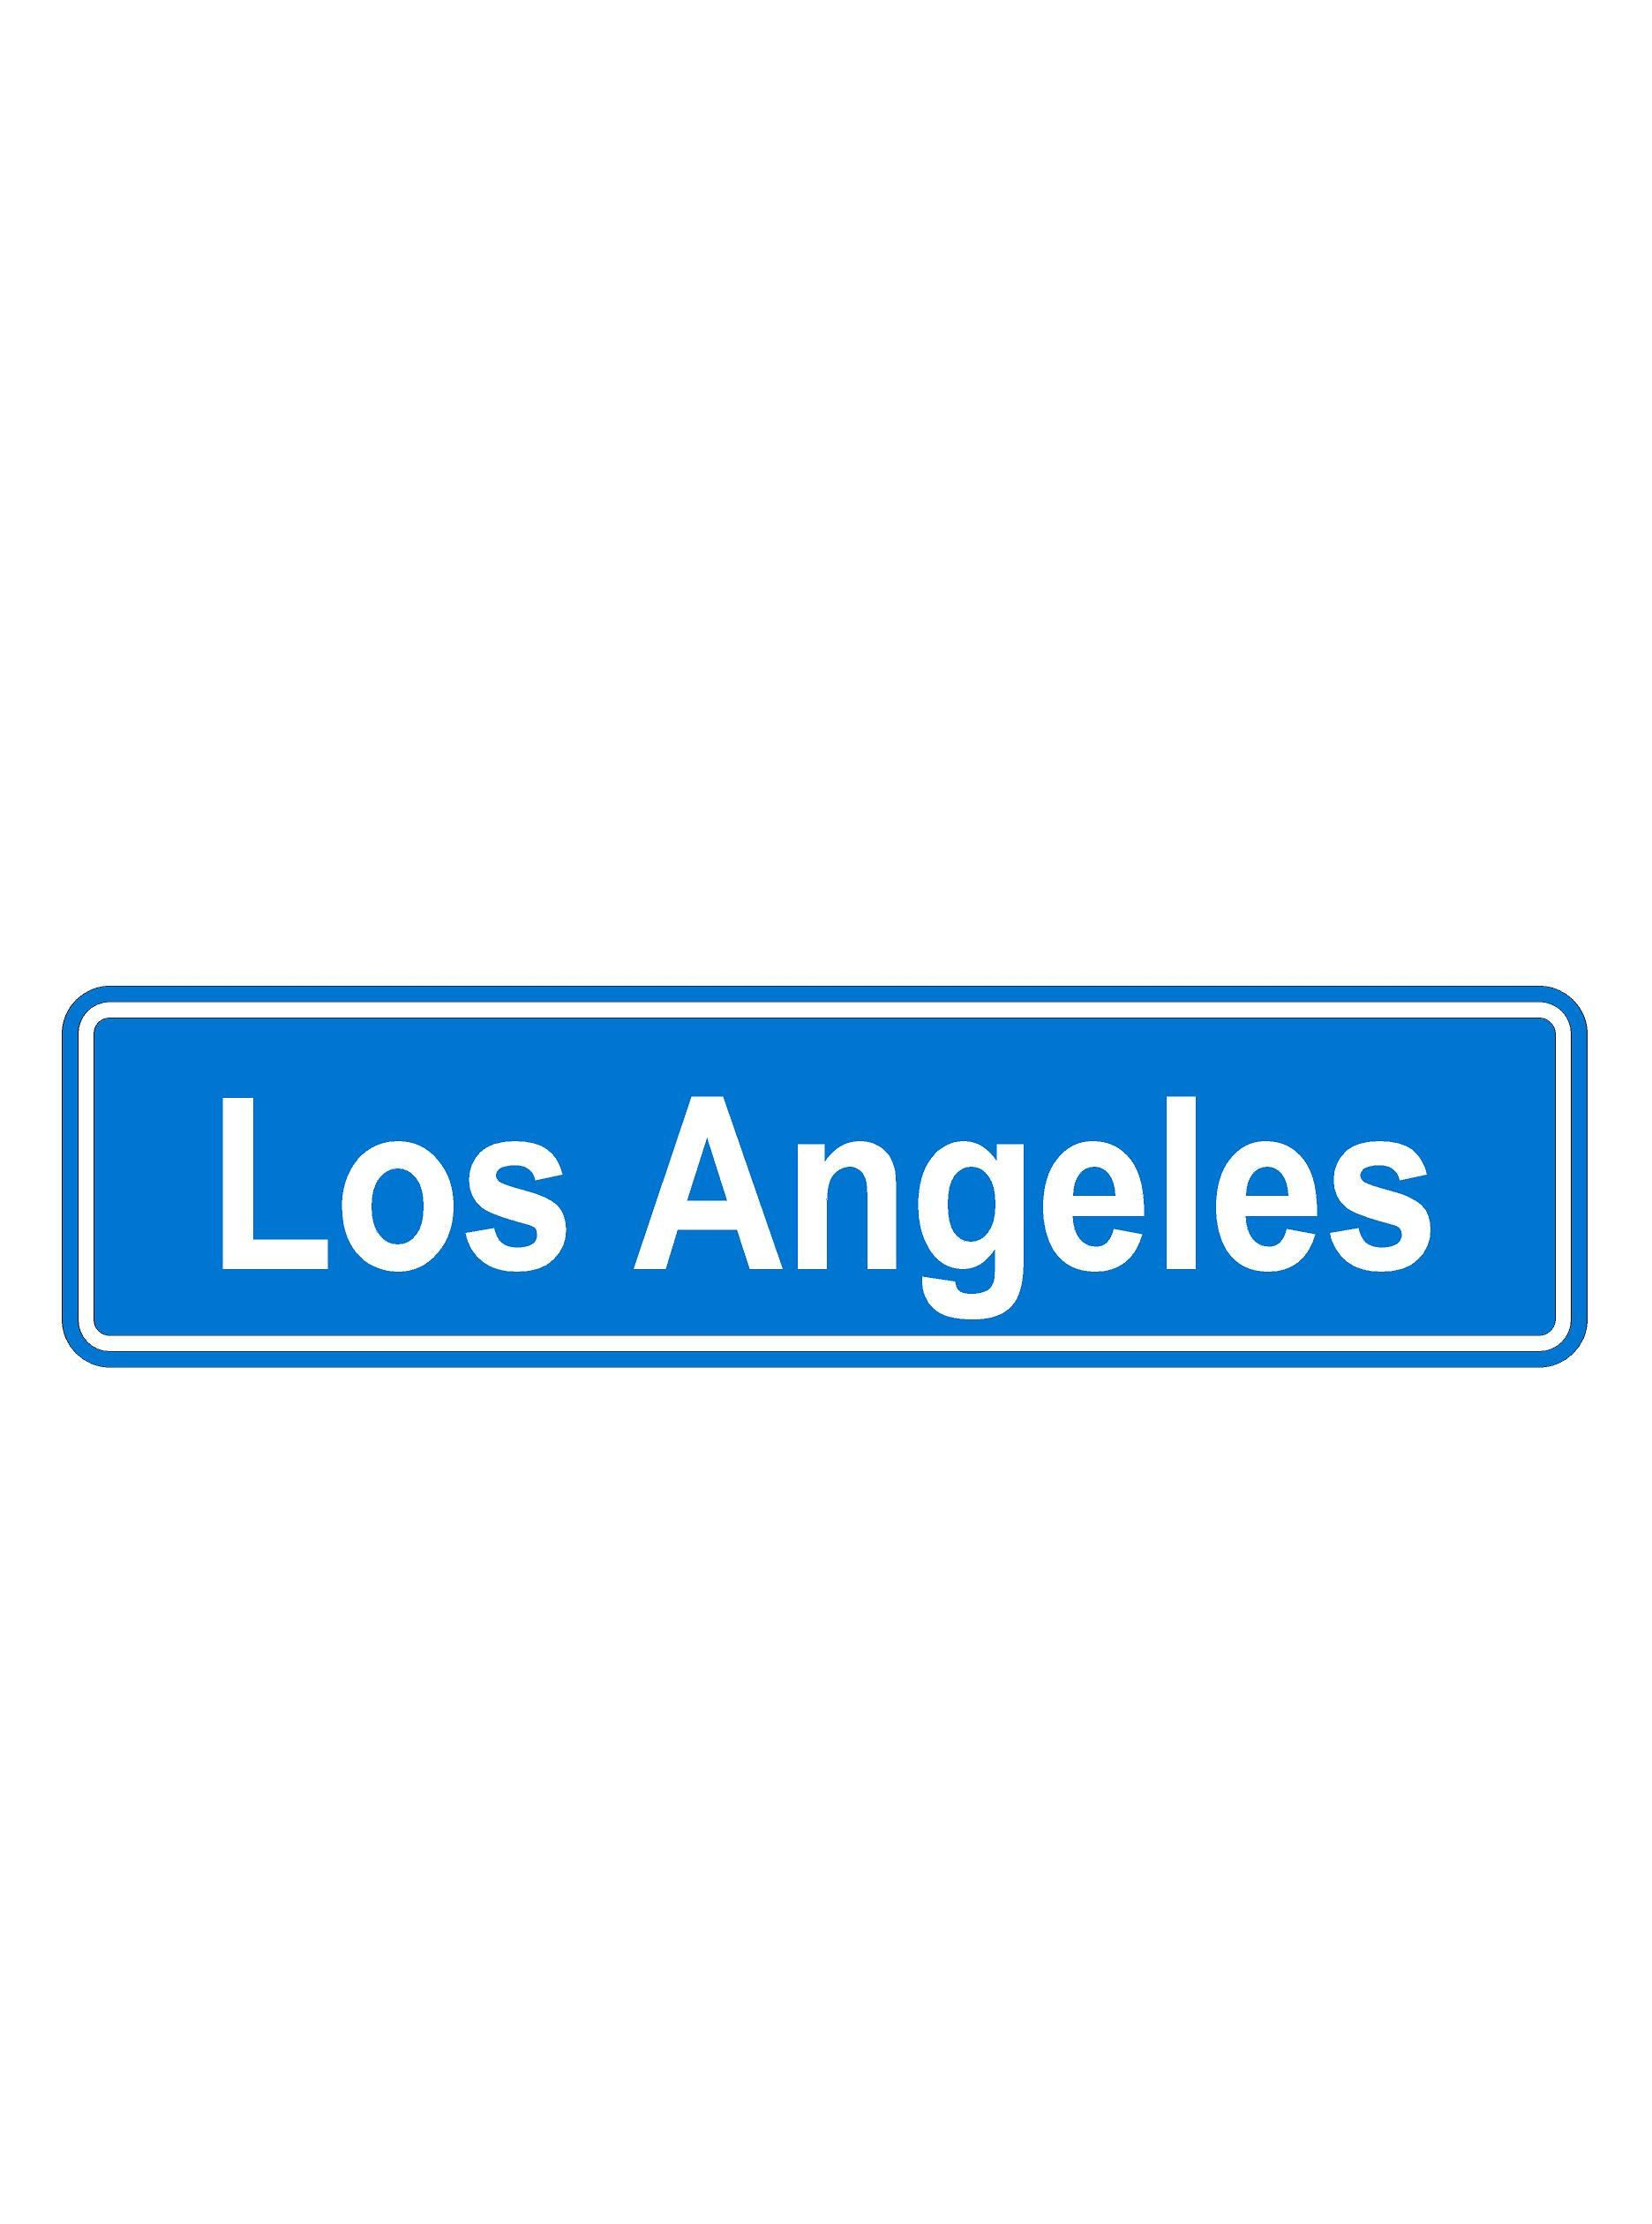 Personalized Street Signs >> Los Angeles Street Signs 6 X 24 Aluminum Los Angeles Street Sign